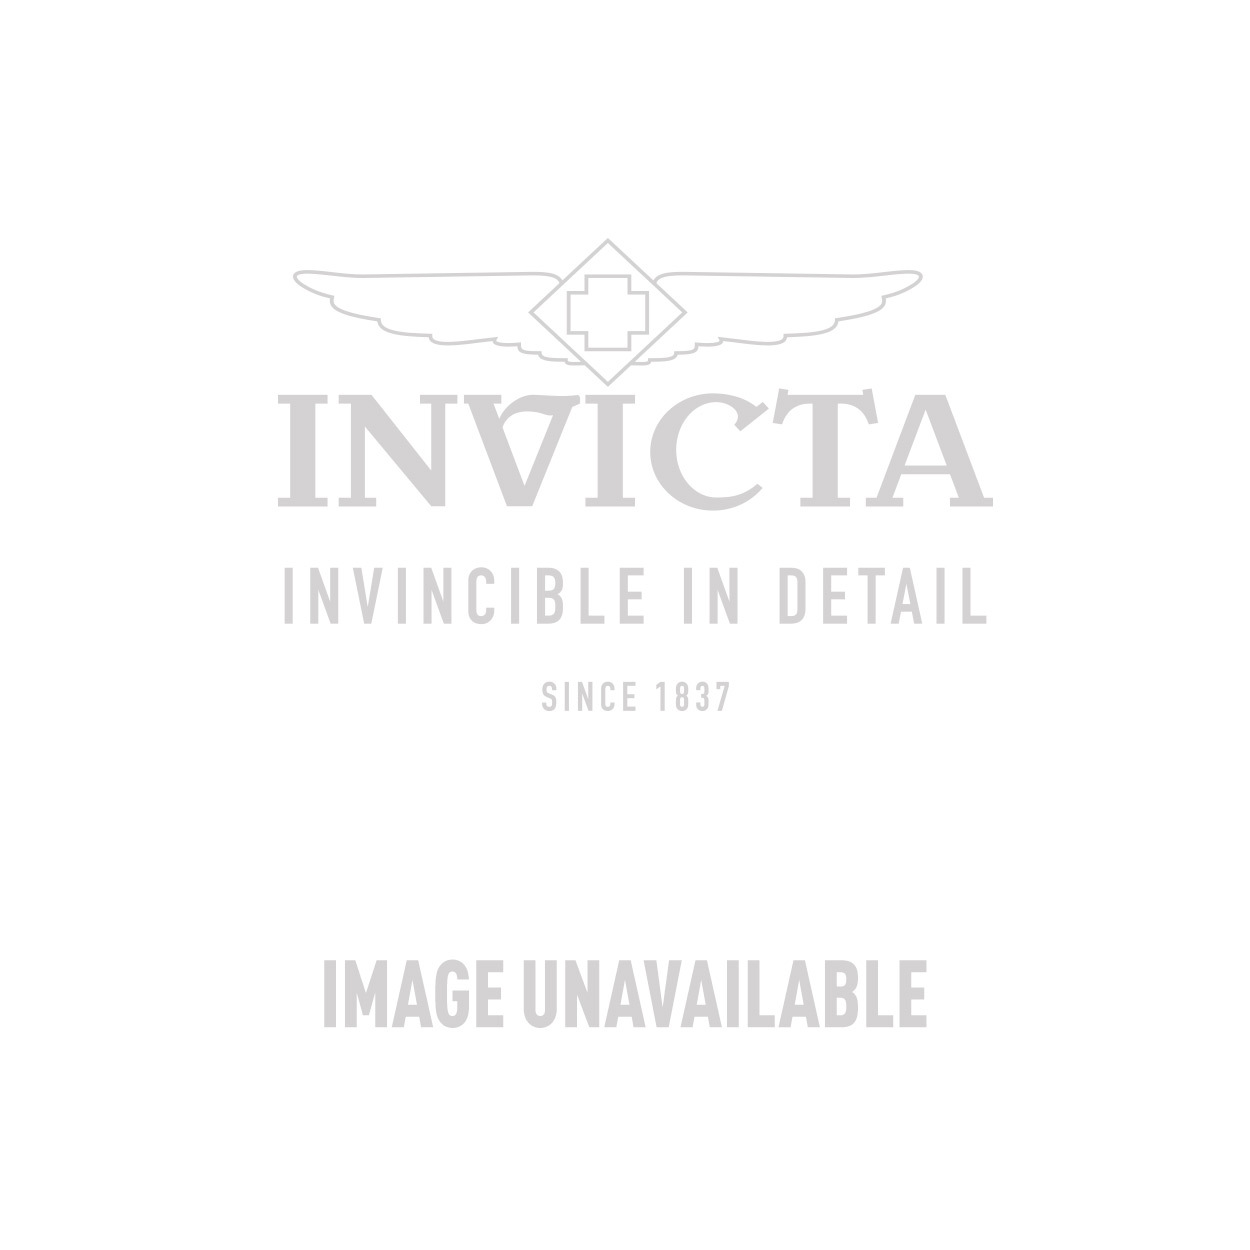 Invicta Lupah Quartz Watch - Stainless Steel case with Grey tone Leather band - Model 19016